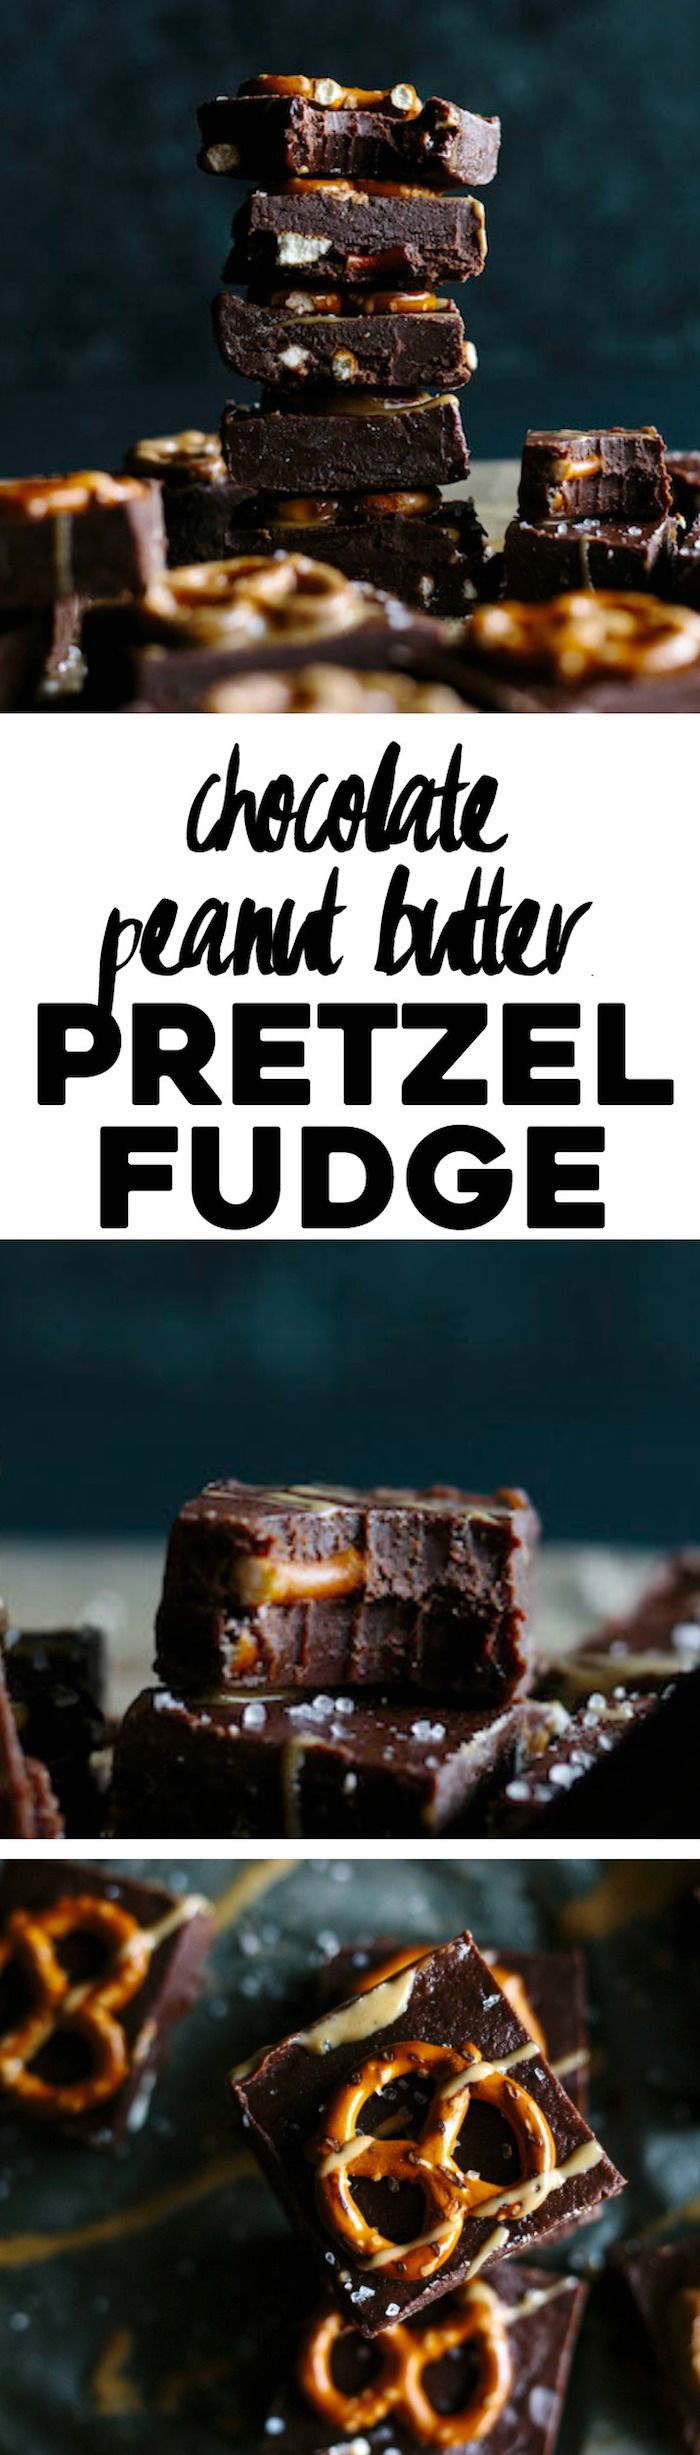 Chocolate Peanut Butter Pretzel Fudge | A simple fudge recipe that combines the 3 best flavors: chocolate, peanut butter and pretzels! | thealmondeater.com